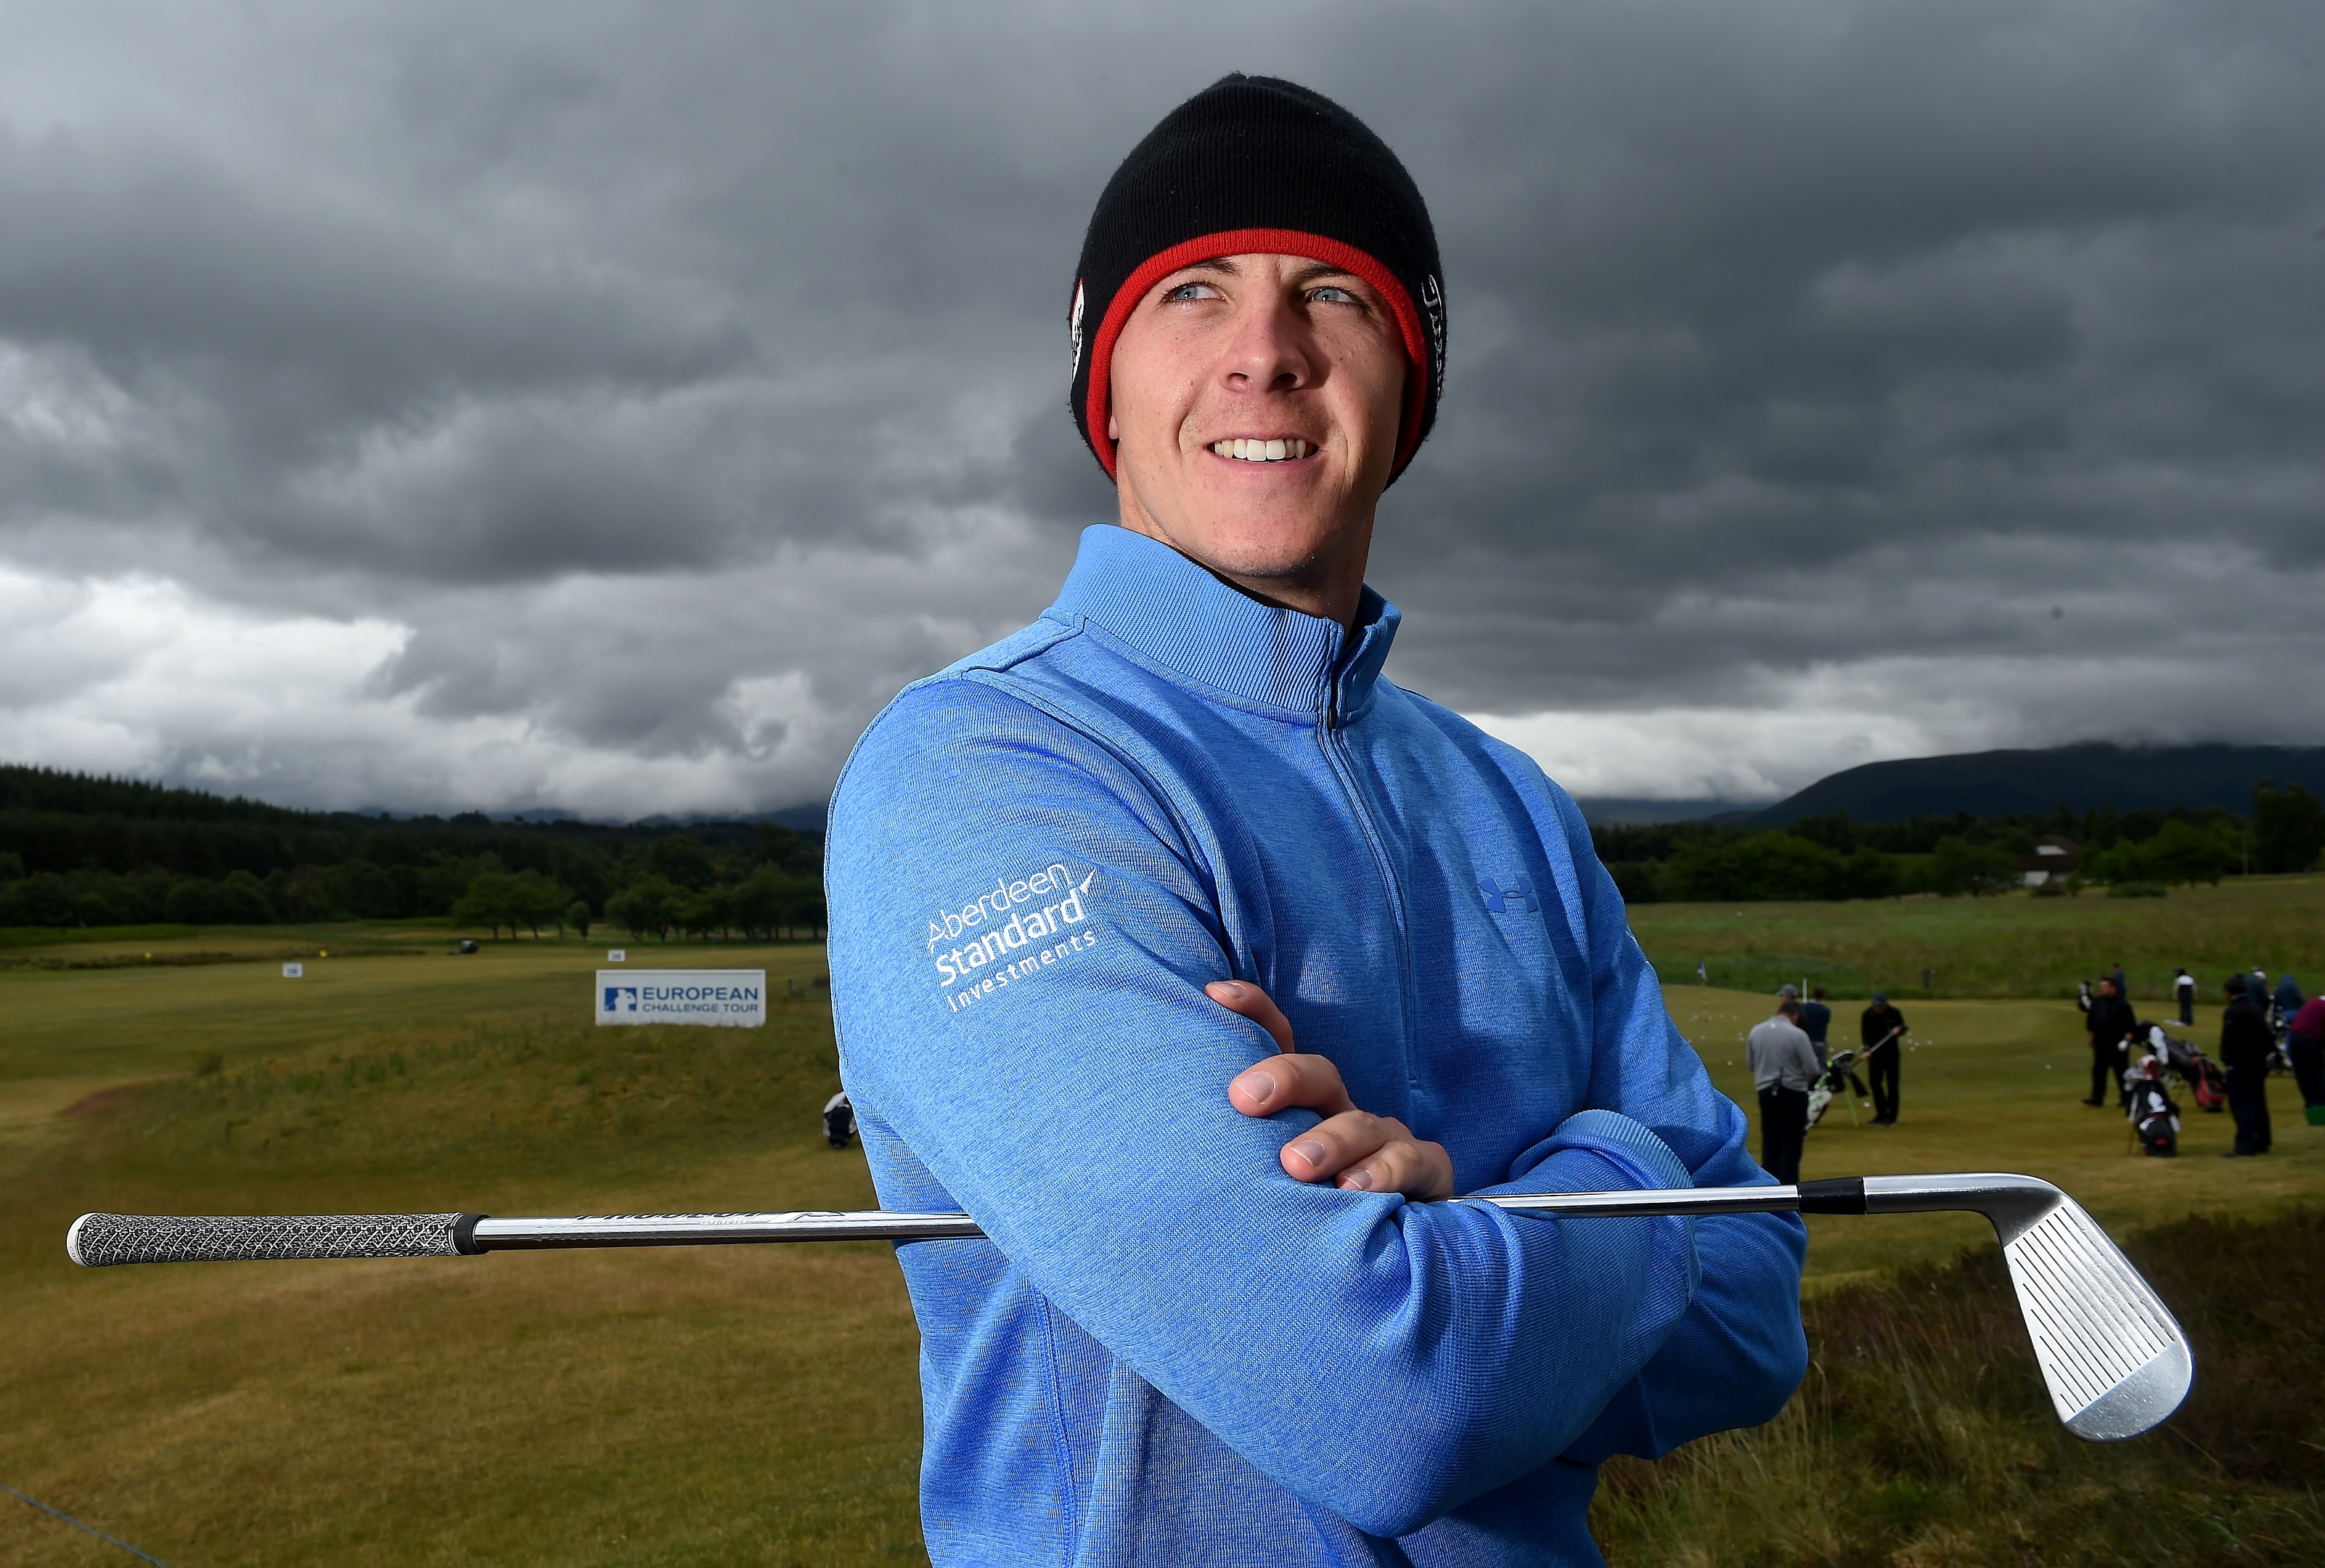 Grant Forrest is the leading Scottish player on the Challenge Tour rankings.